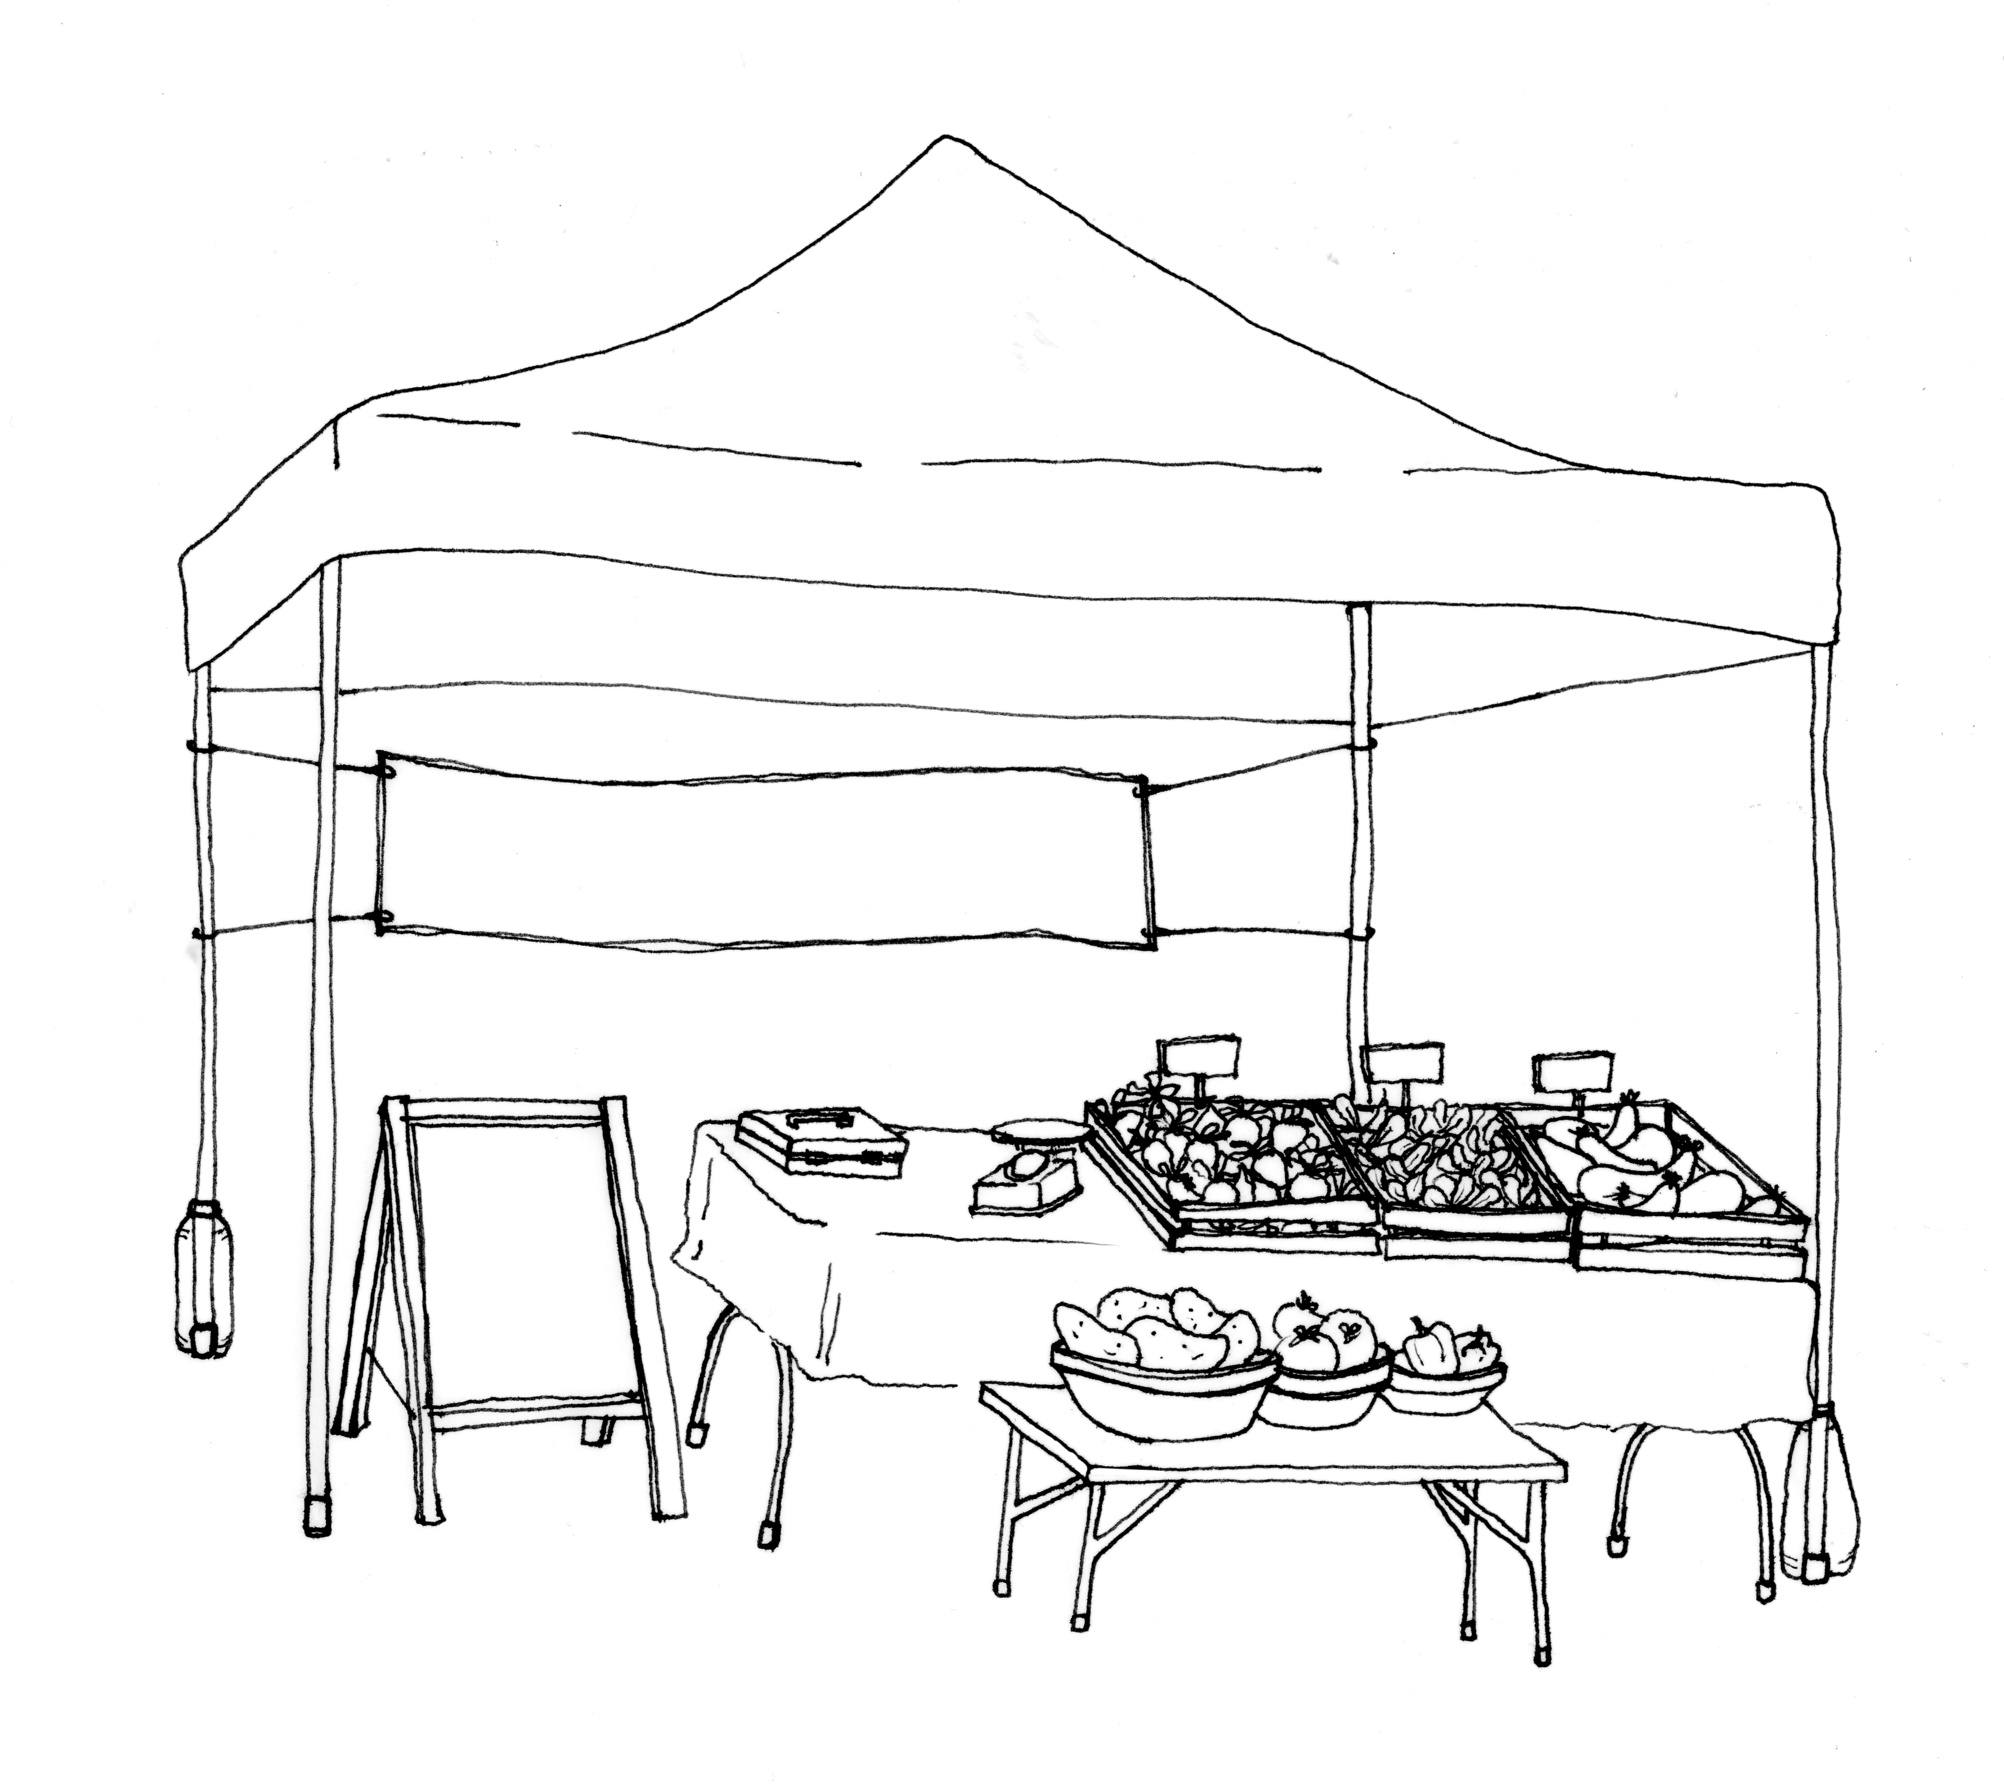 Required items shown in diagram: canopy, 30lb canopy weights, table, tablecloth. business name sign (shown as banner), pricing signage (shown as sandwich board or individual tags).